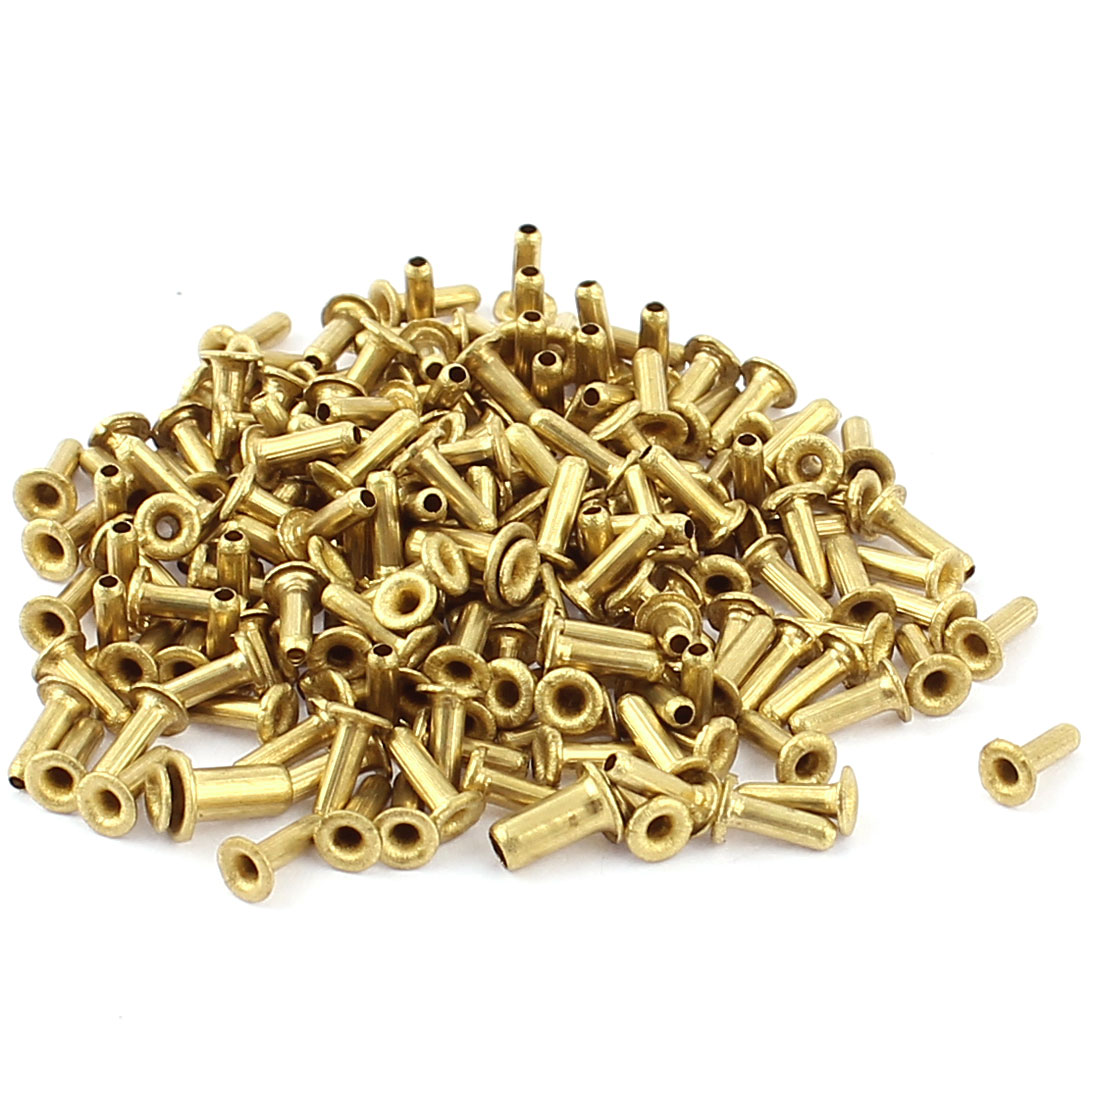 200 Pcs M1.5*5 copper Tone Eyelet Buttonhole rivet Retainer Ring Button Buckle